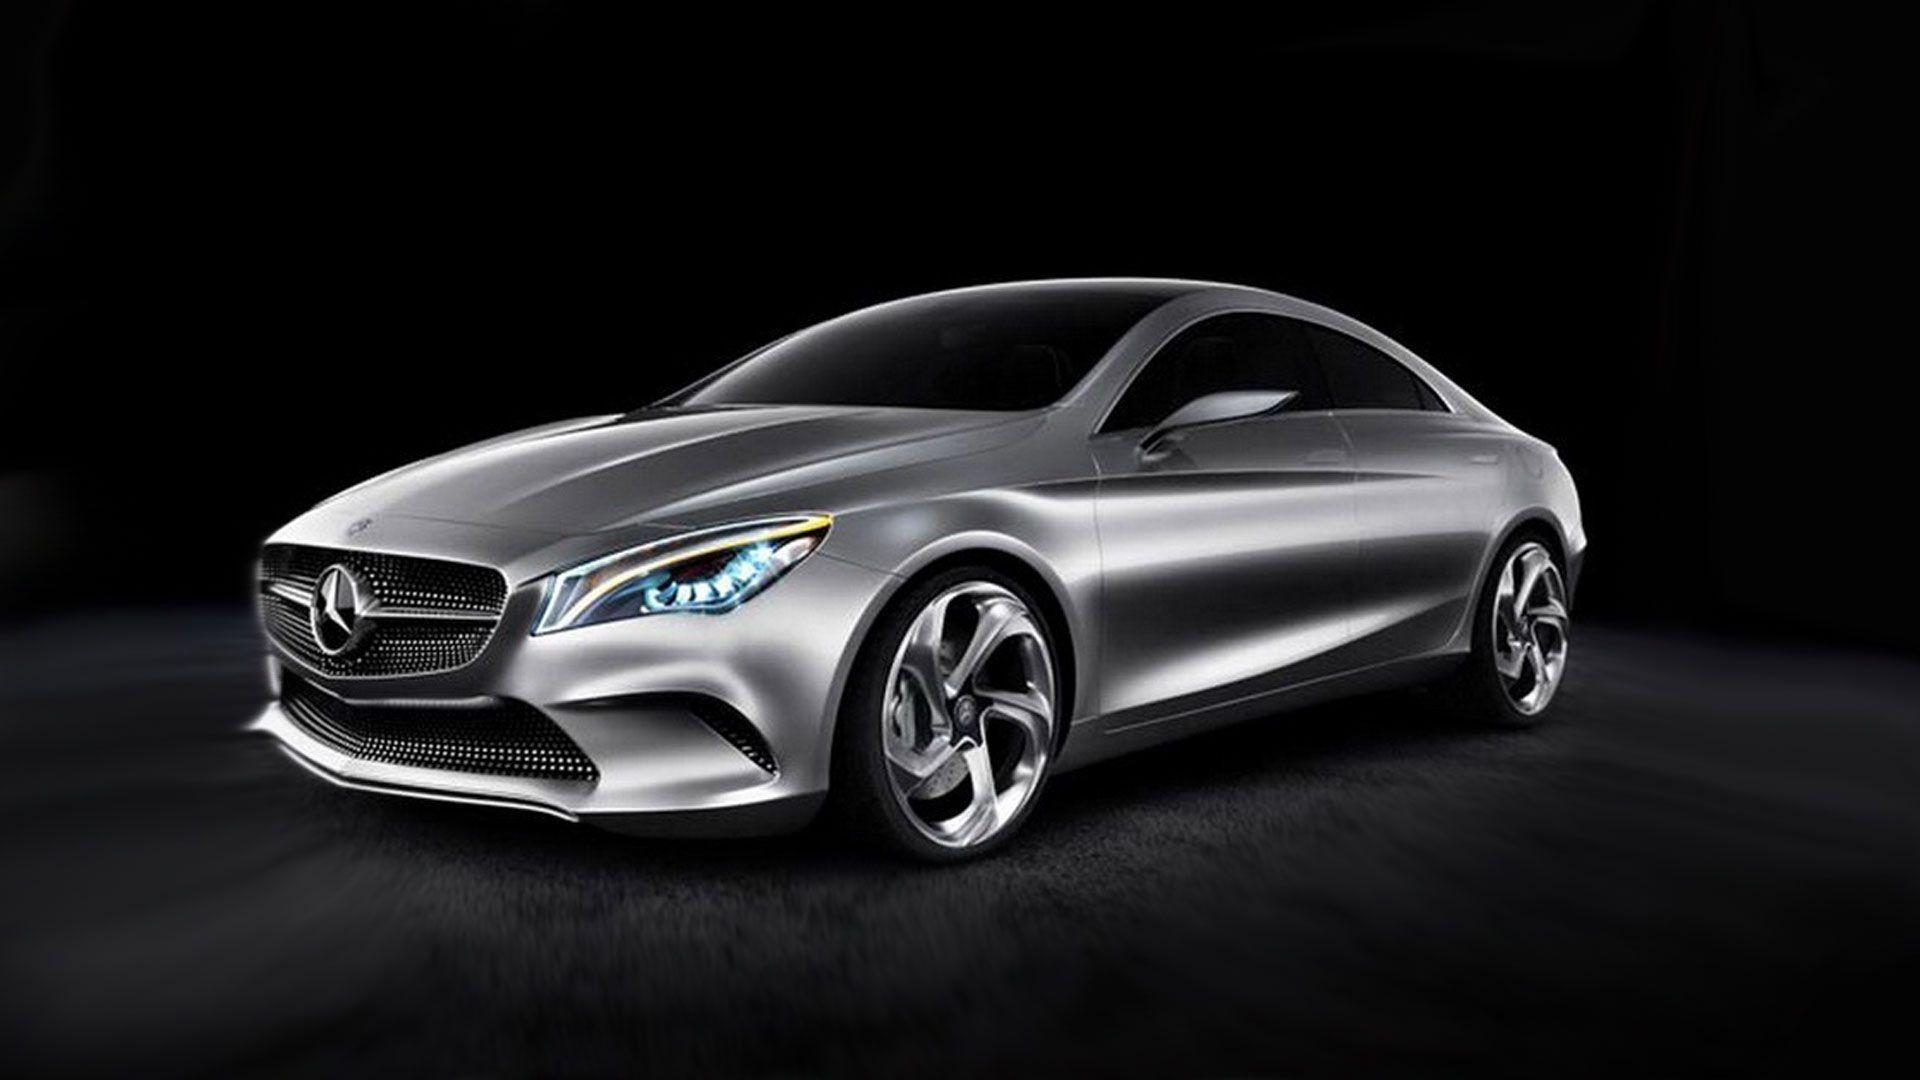 Mercedes Benz Wallpapers 1920 1080p